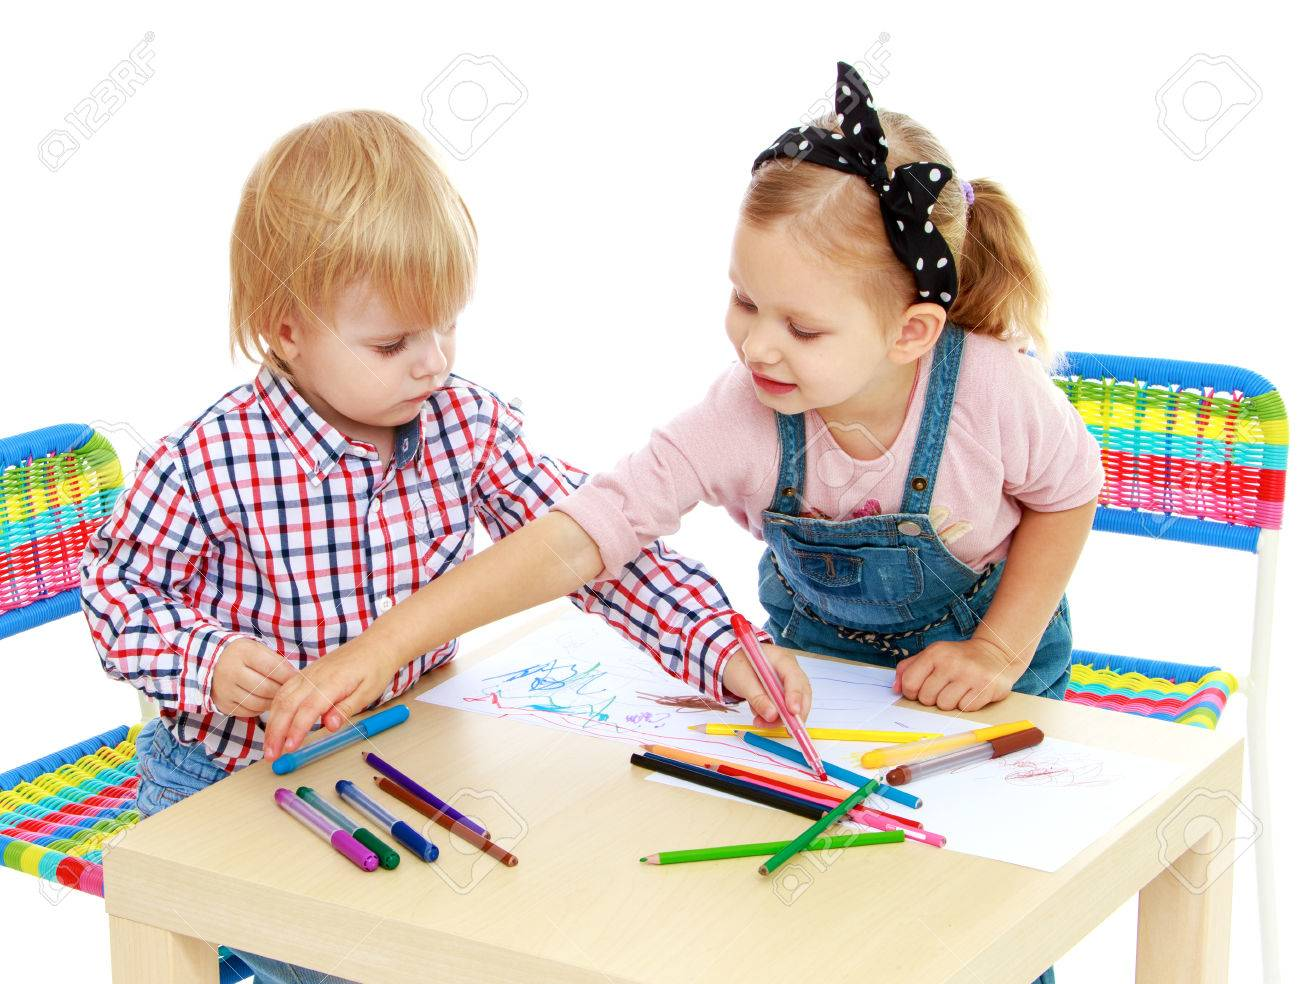 Boy and girl drawing with pencils sitting at the table.Isolated on white background. - 35752653